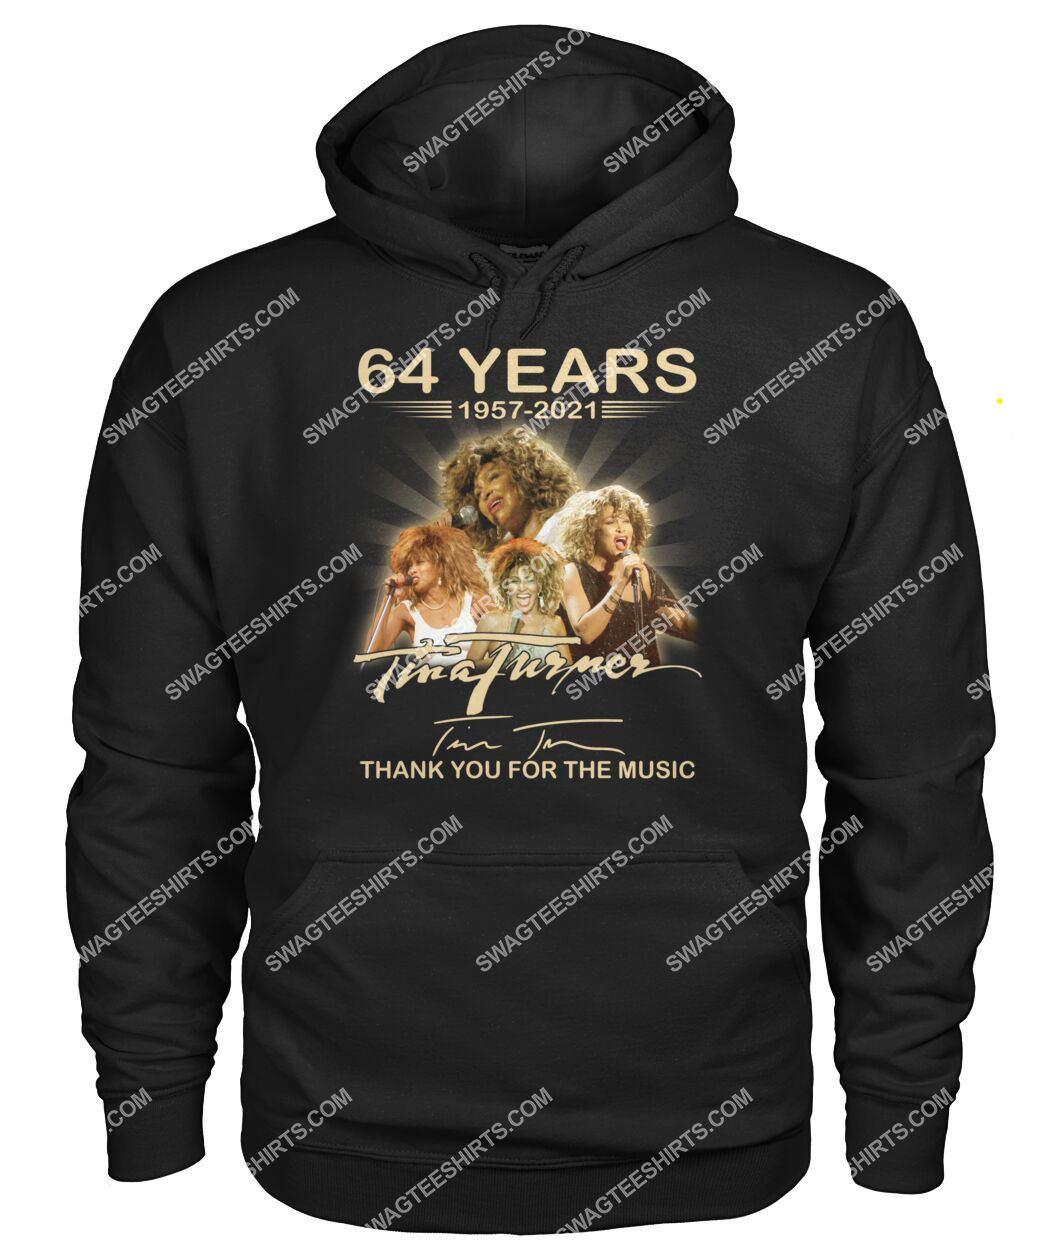 tina turner 64 years thank you for the music signature hoodie 1